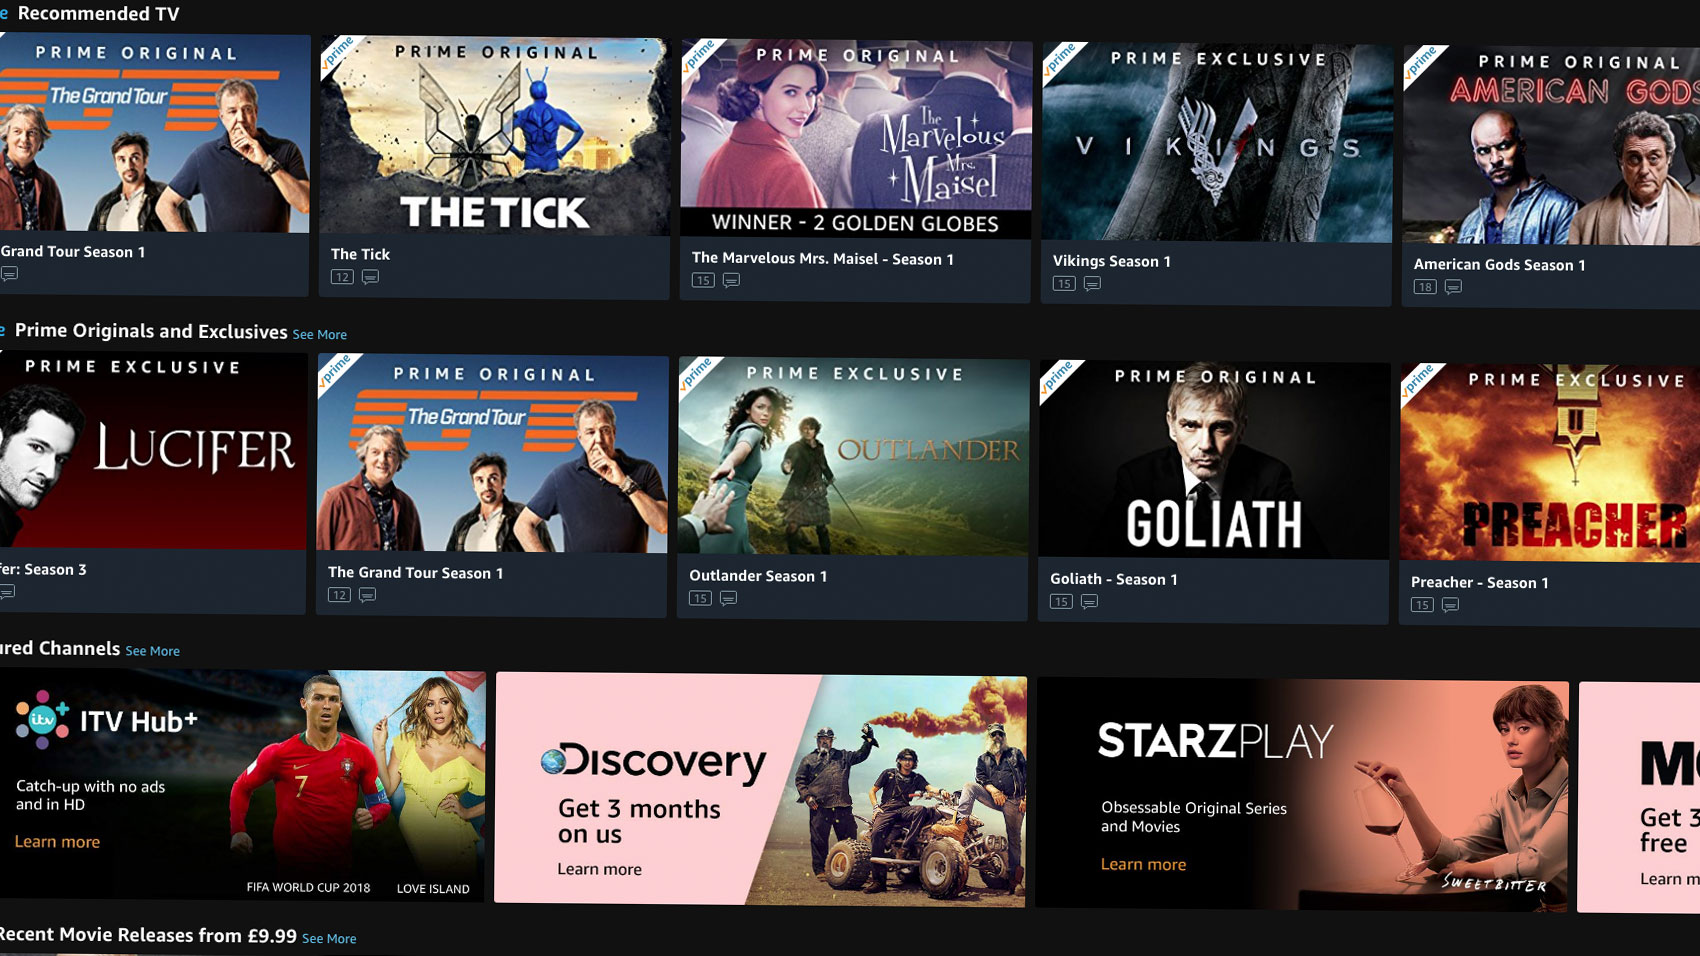 5 of the best TV series on Amazon Prime   Creative Bloq